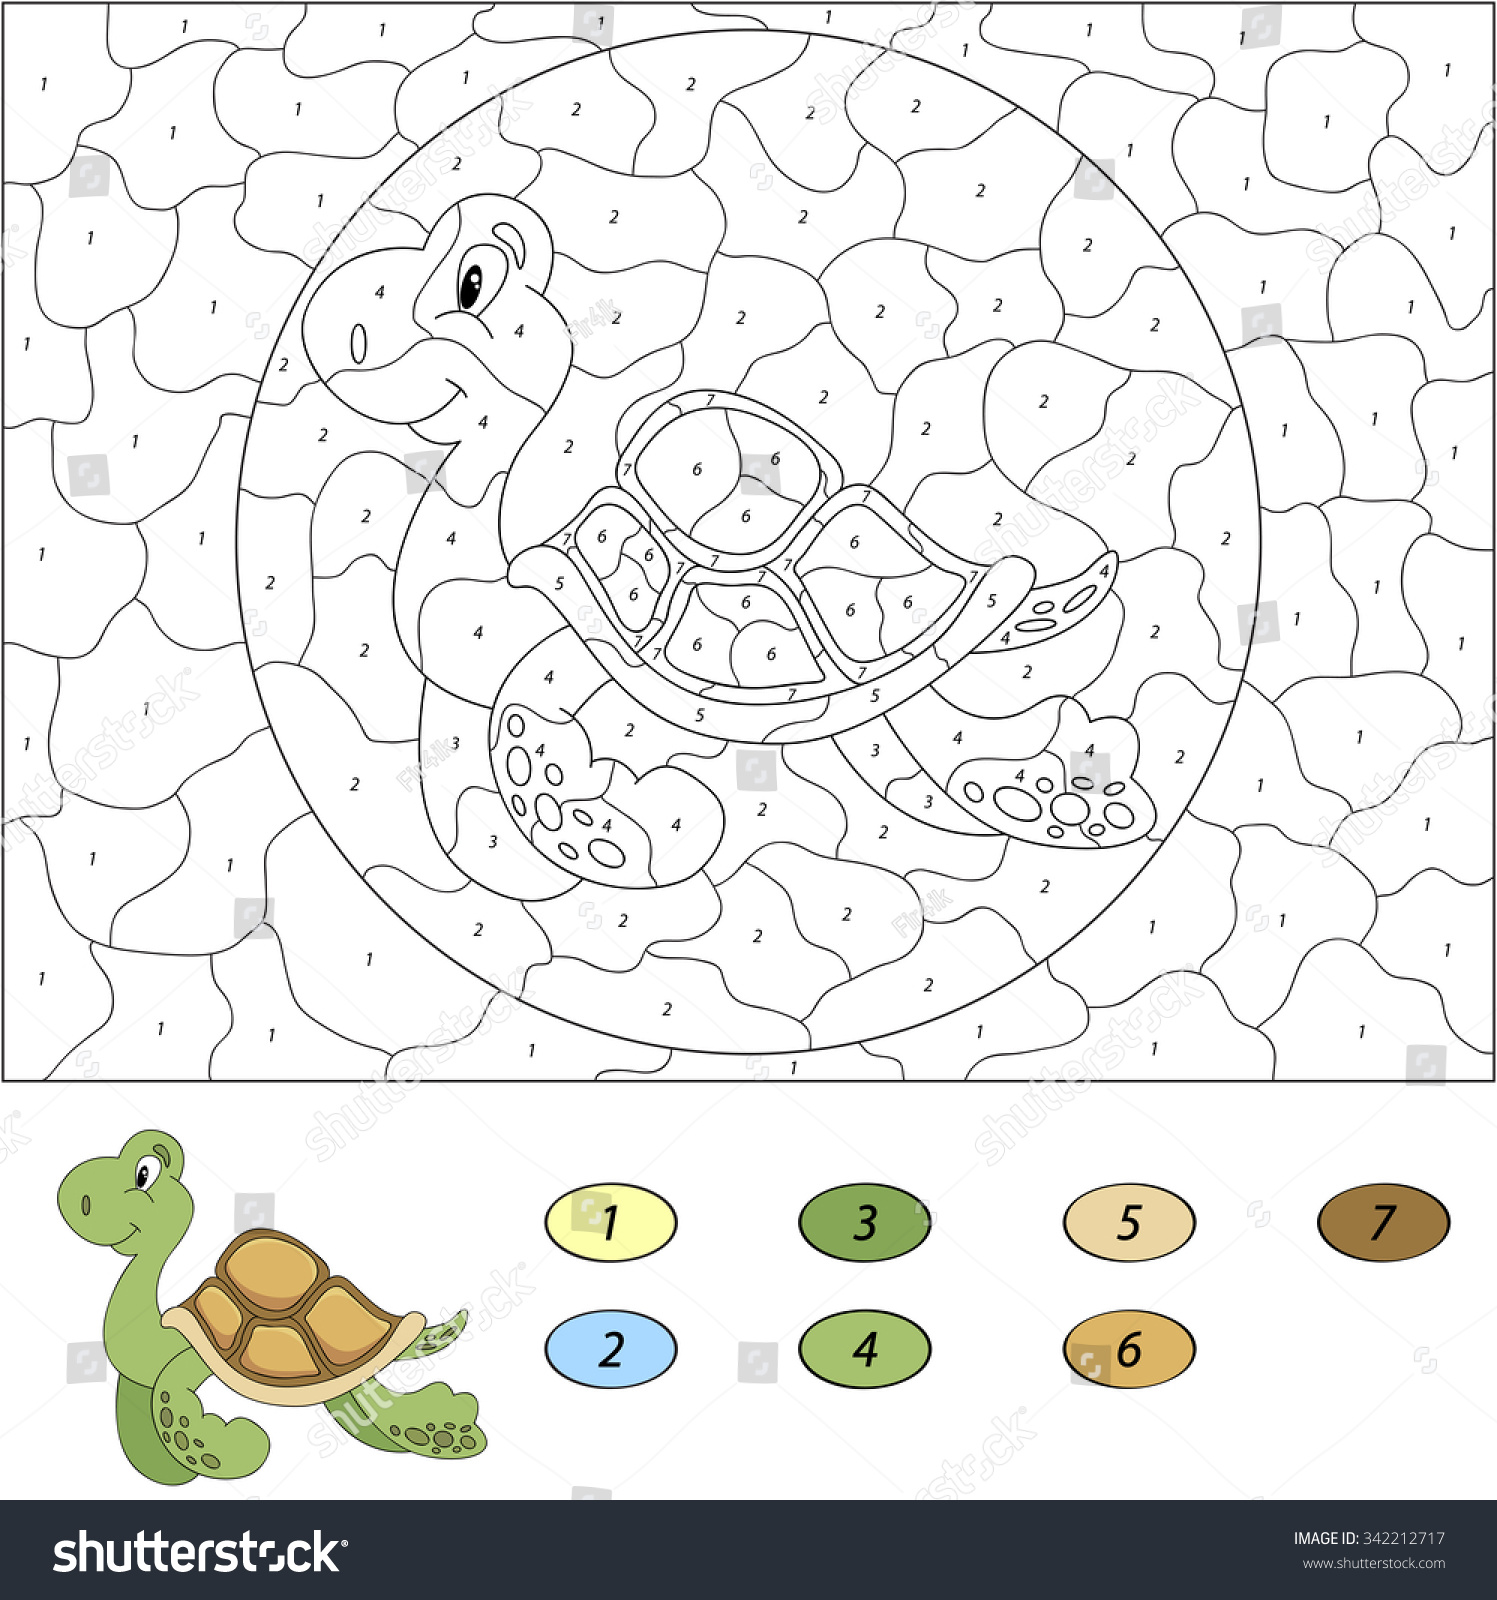 Game color by numbers - Color By Number Educational Game For Kids Funny Cartoon Turtle Vector Illustration For Schoolchild